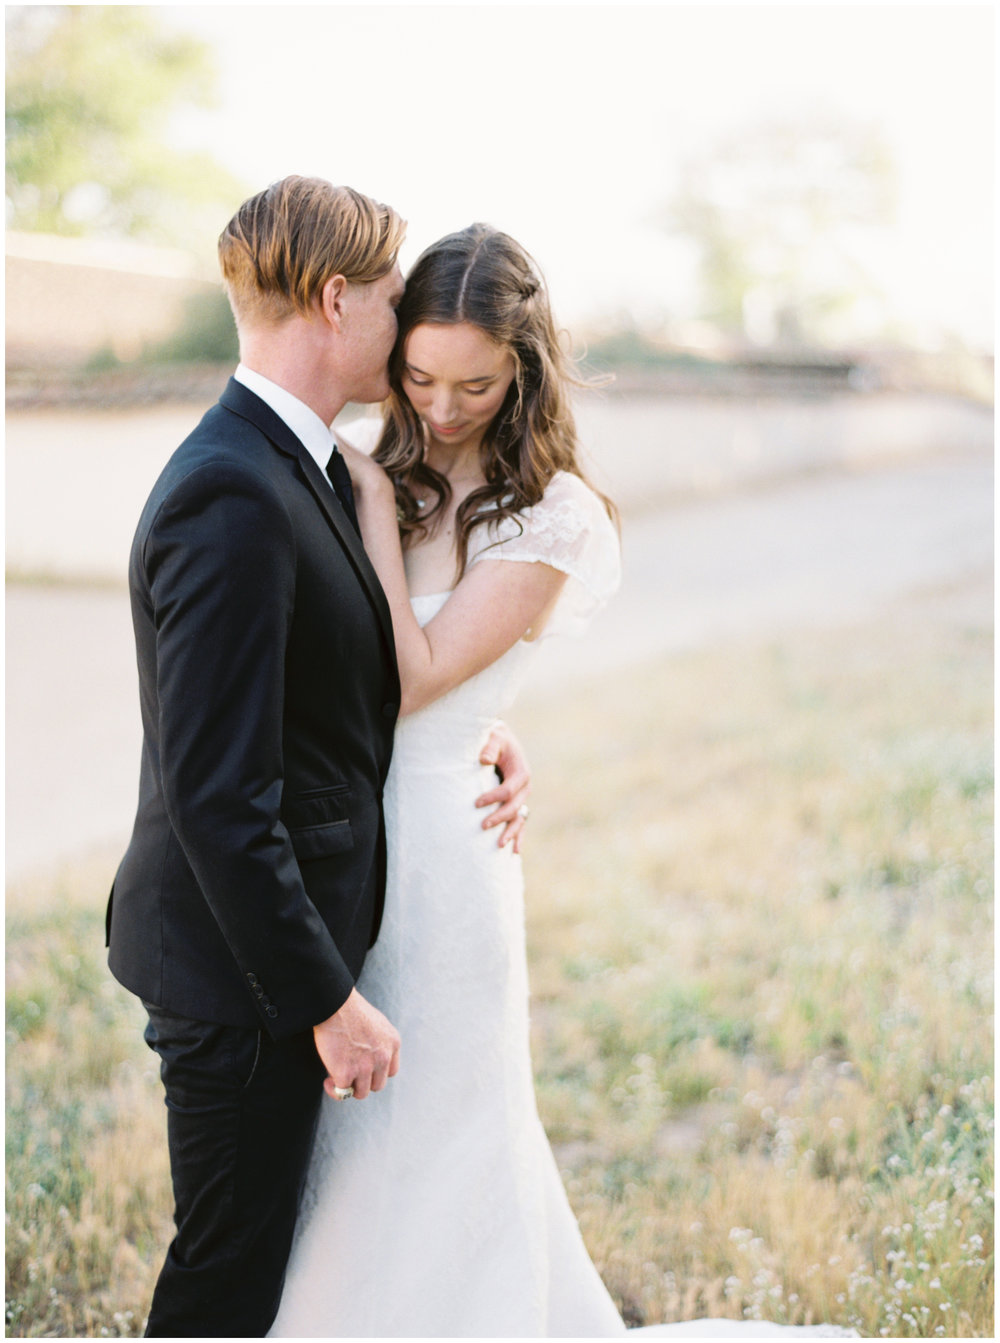 Santa_Barbara_Wedding_Photographer_Pinnel_Photography_La_Purisima_Mission-028.jpg